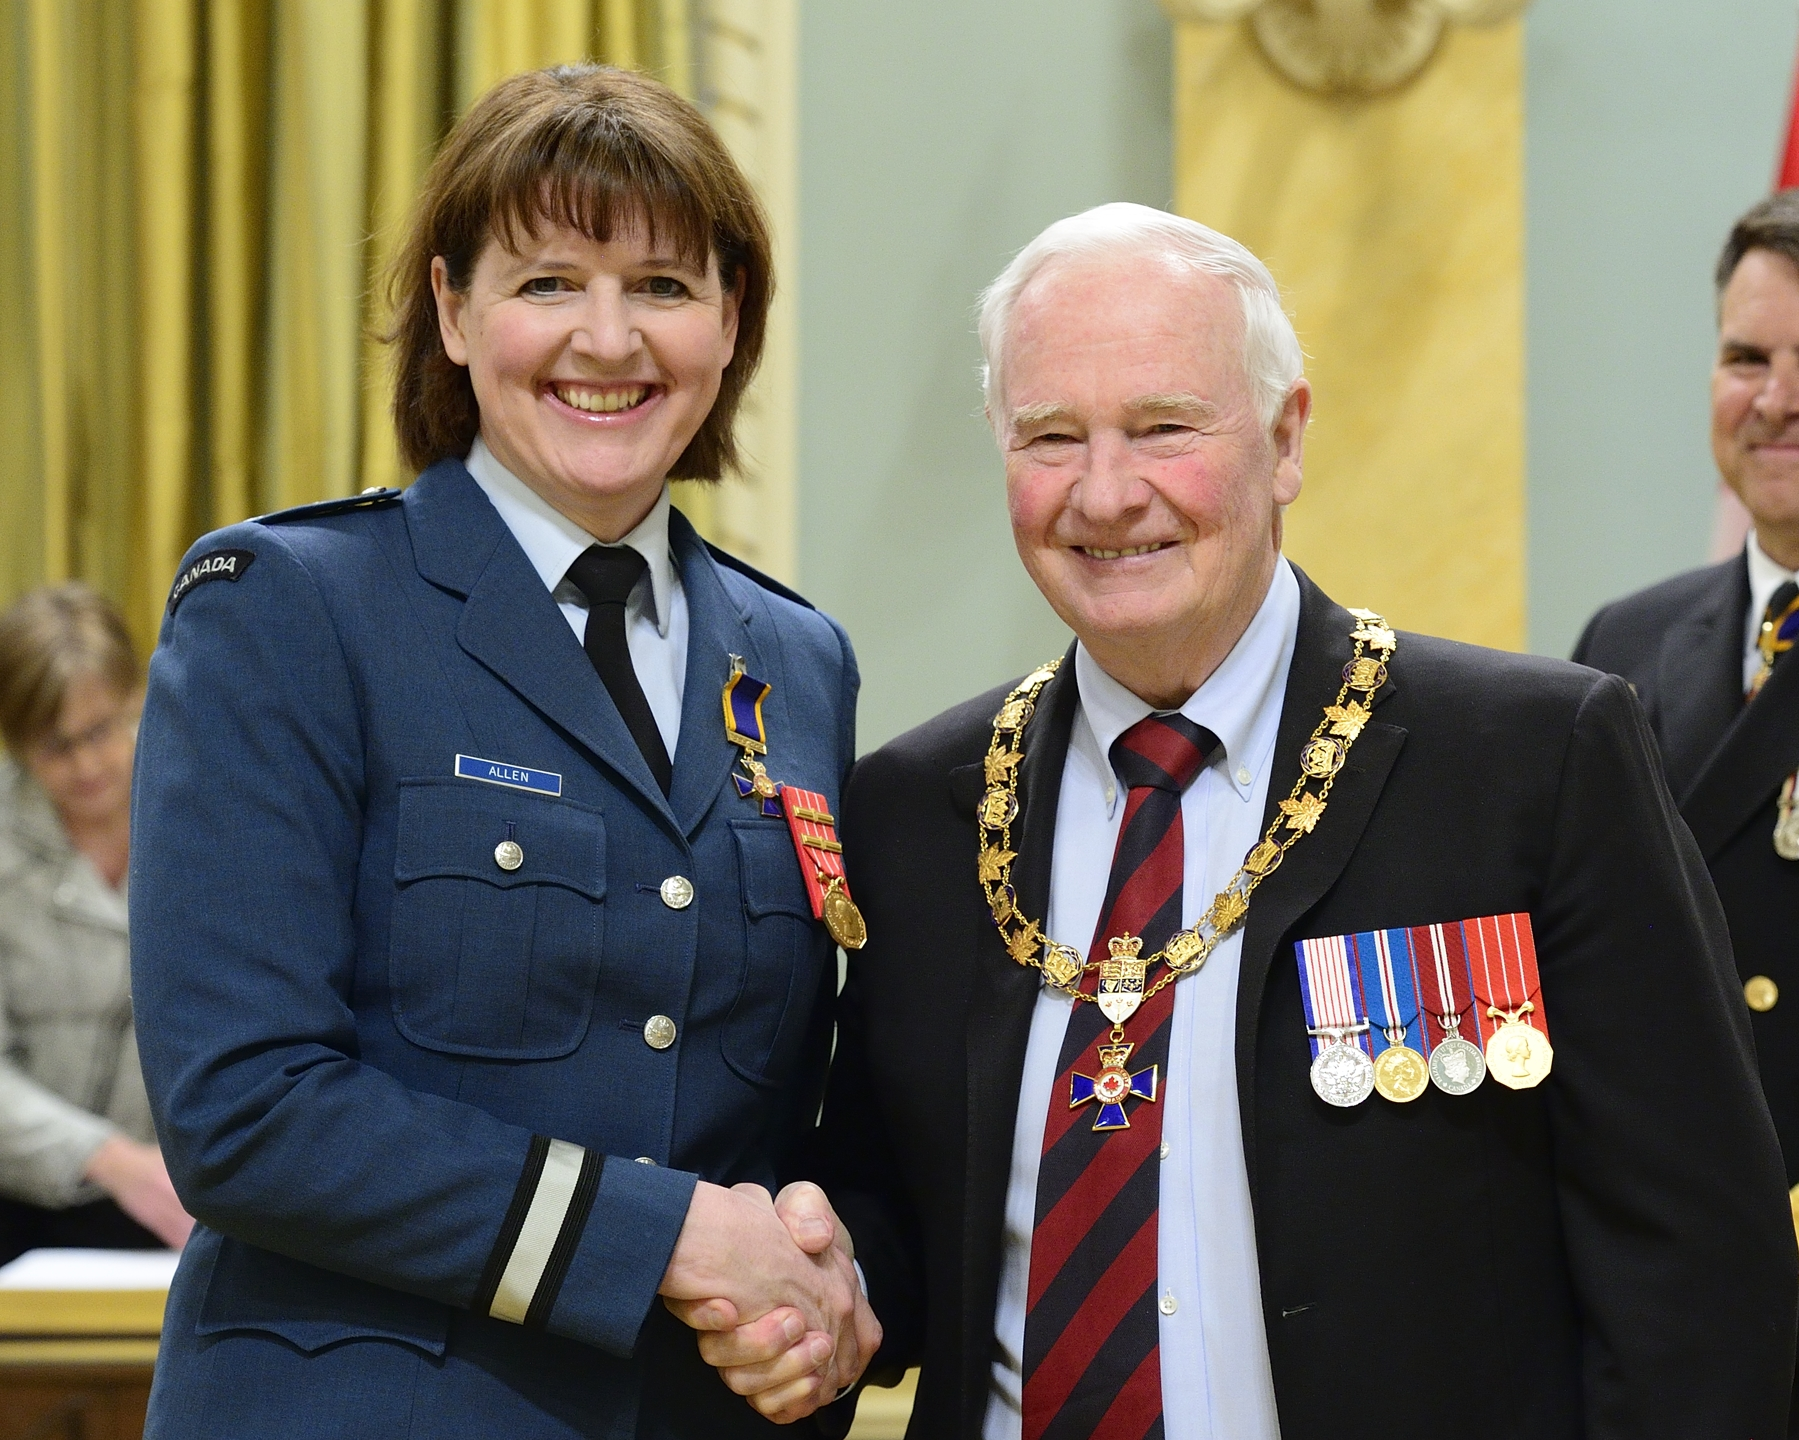 Brigadier-General Frances Jennifer Allen was inducted as an officer of the Order of Military Merit by Governor General and Commander-in-Chief of Canada David Johnston on March 6, 2017. PHOTO: Sergeant Johanie Mahieu, Rideau Hall ©, GG05-2017-0075-013